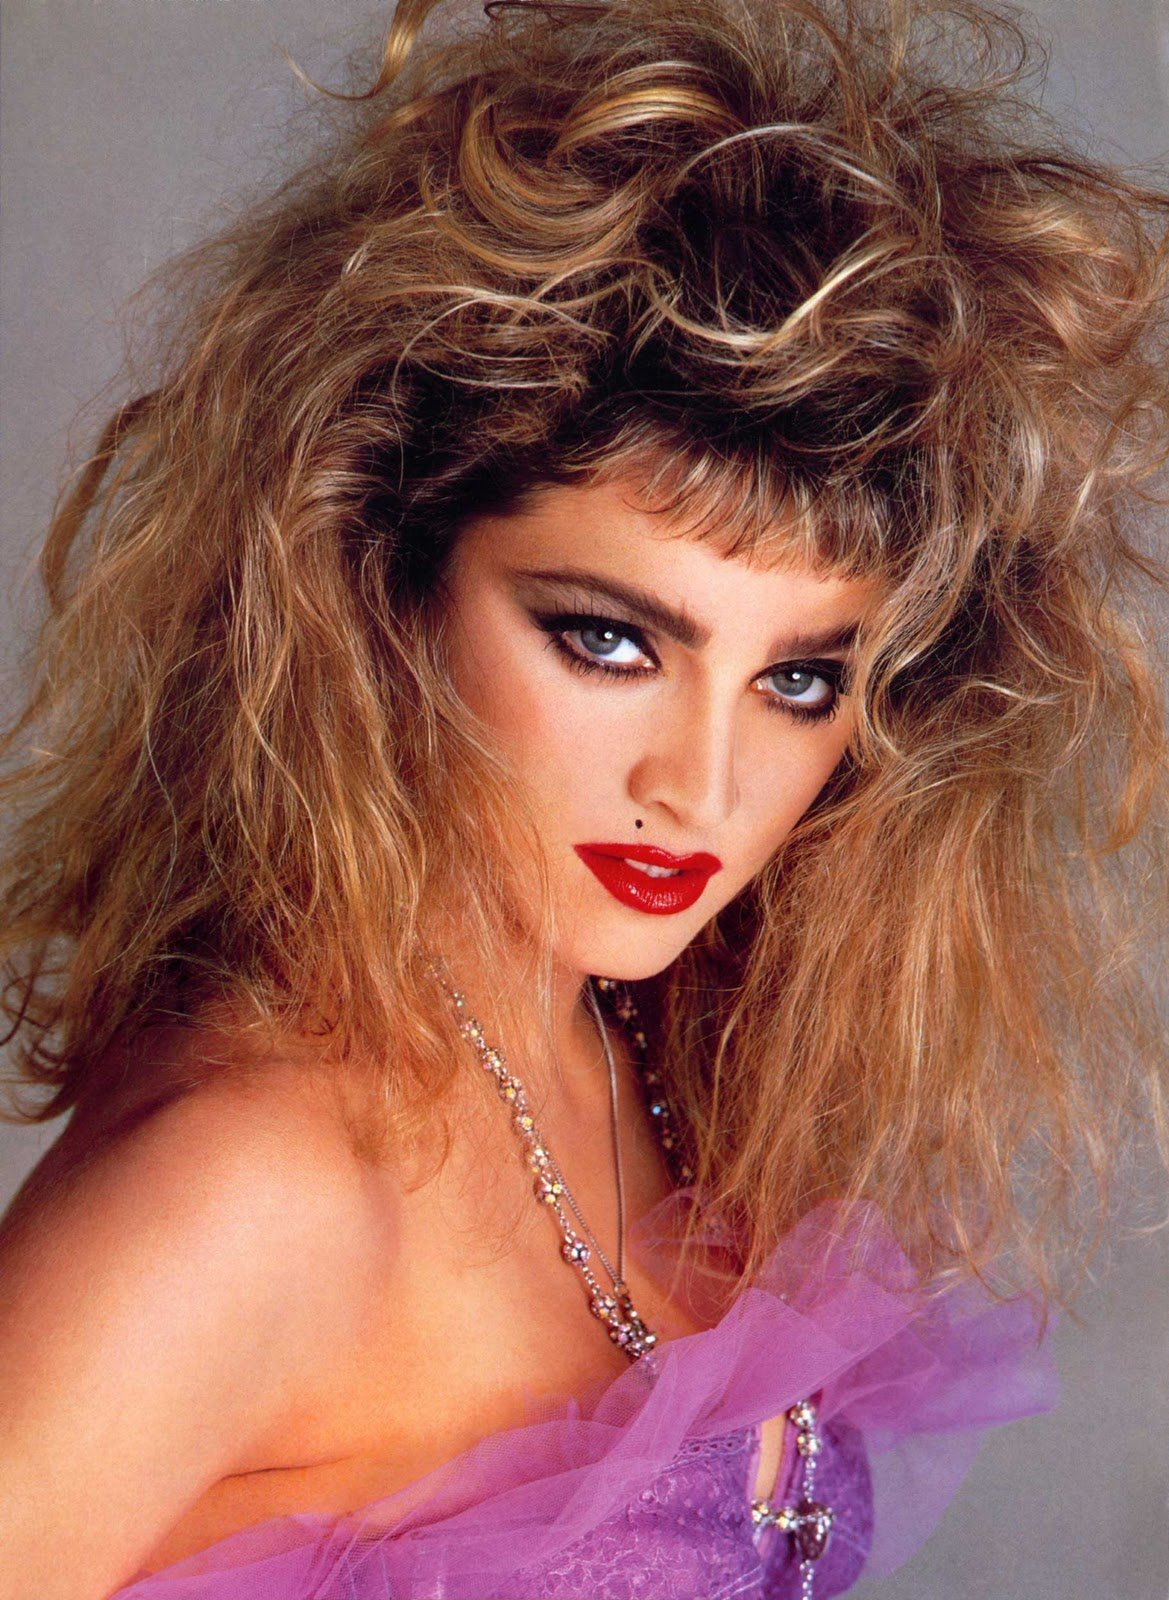 The Best Life On Mars Beauty Through The Decades 80 S Pictures